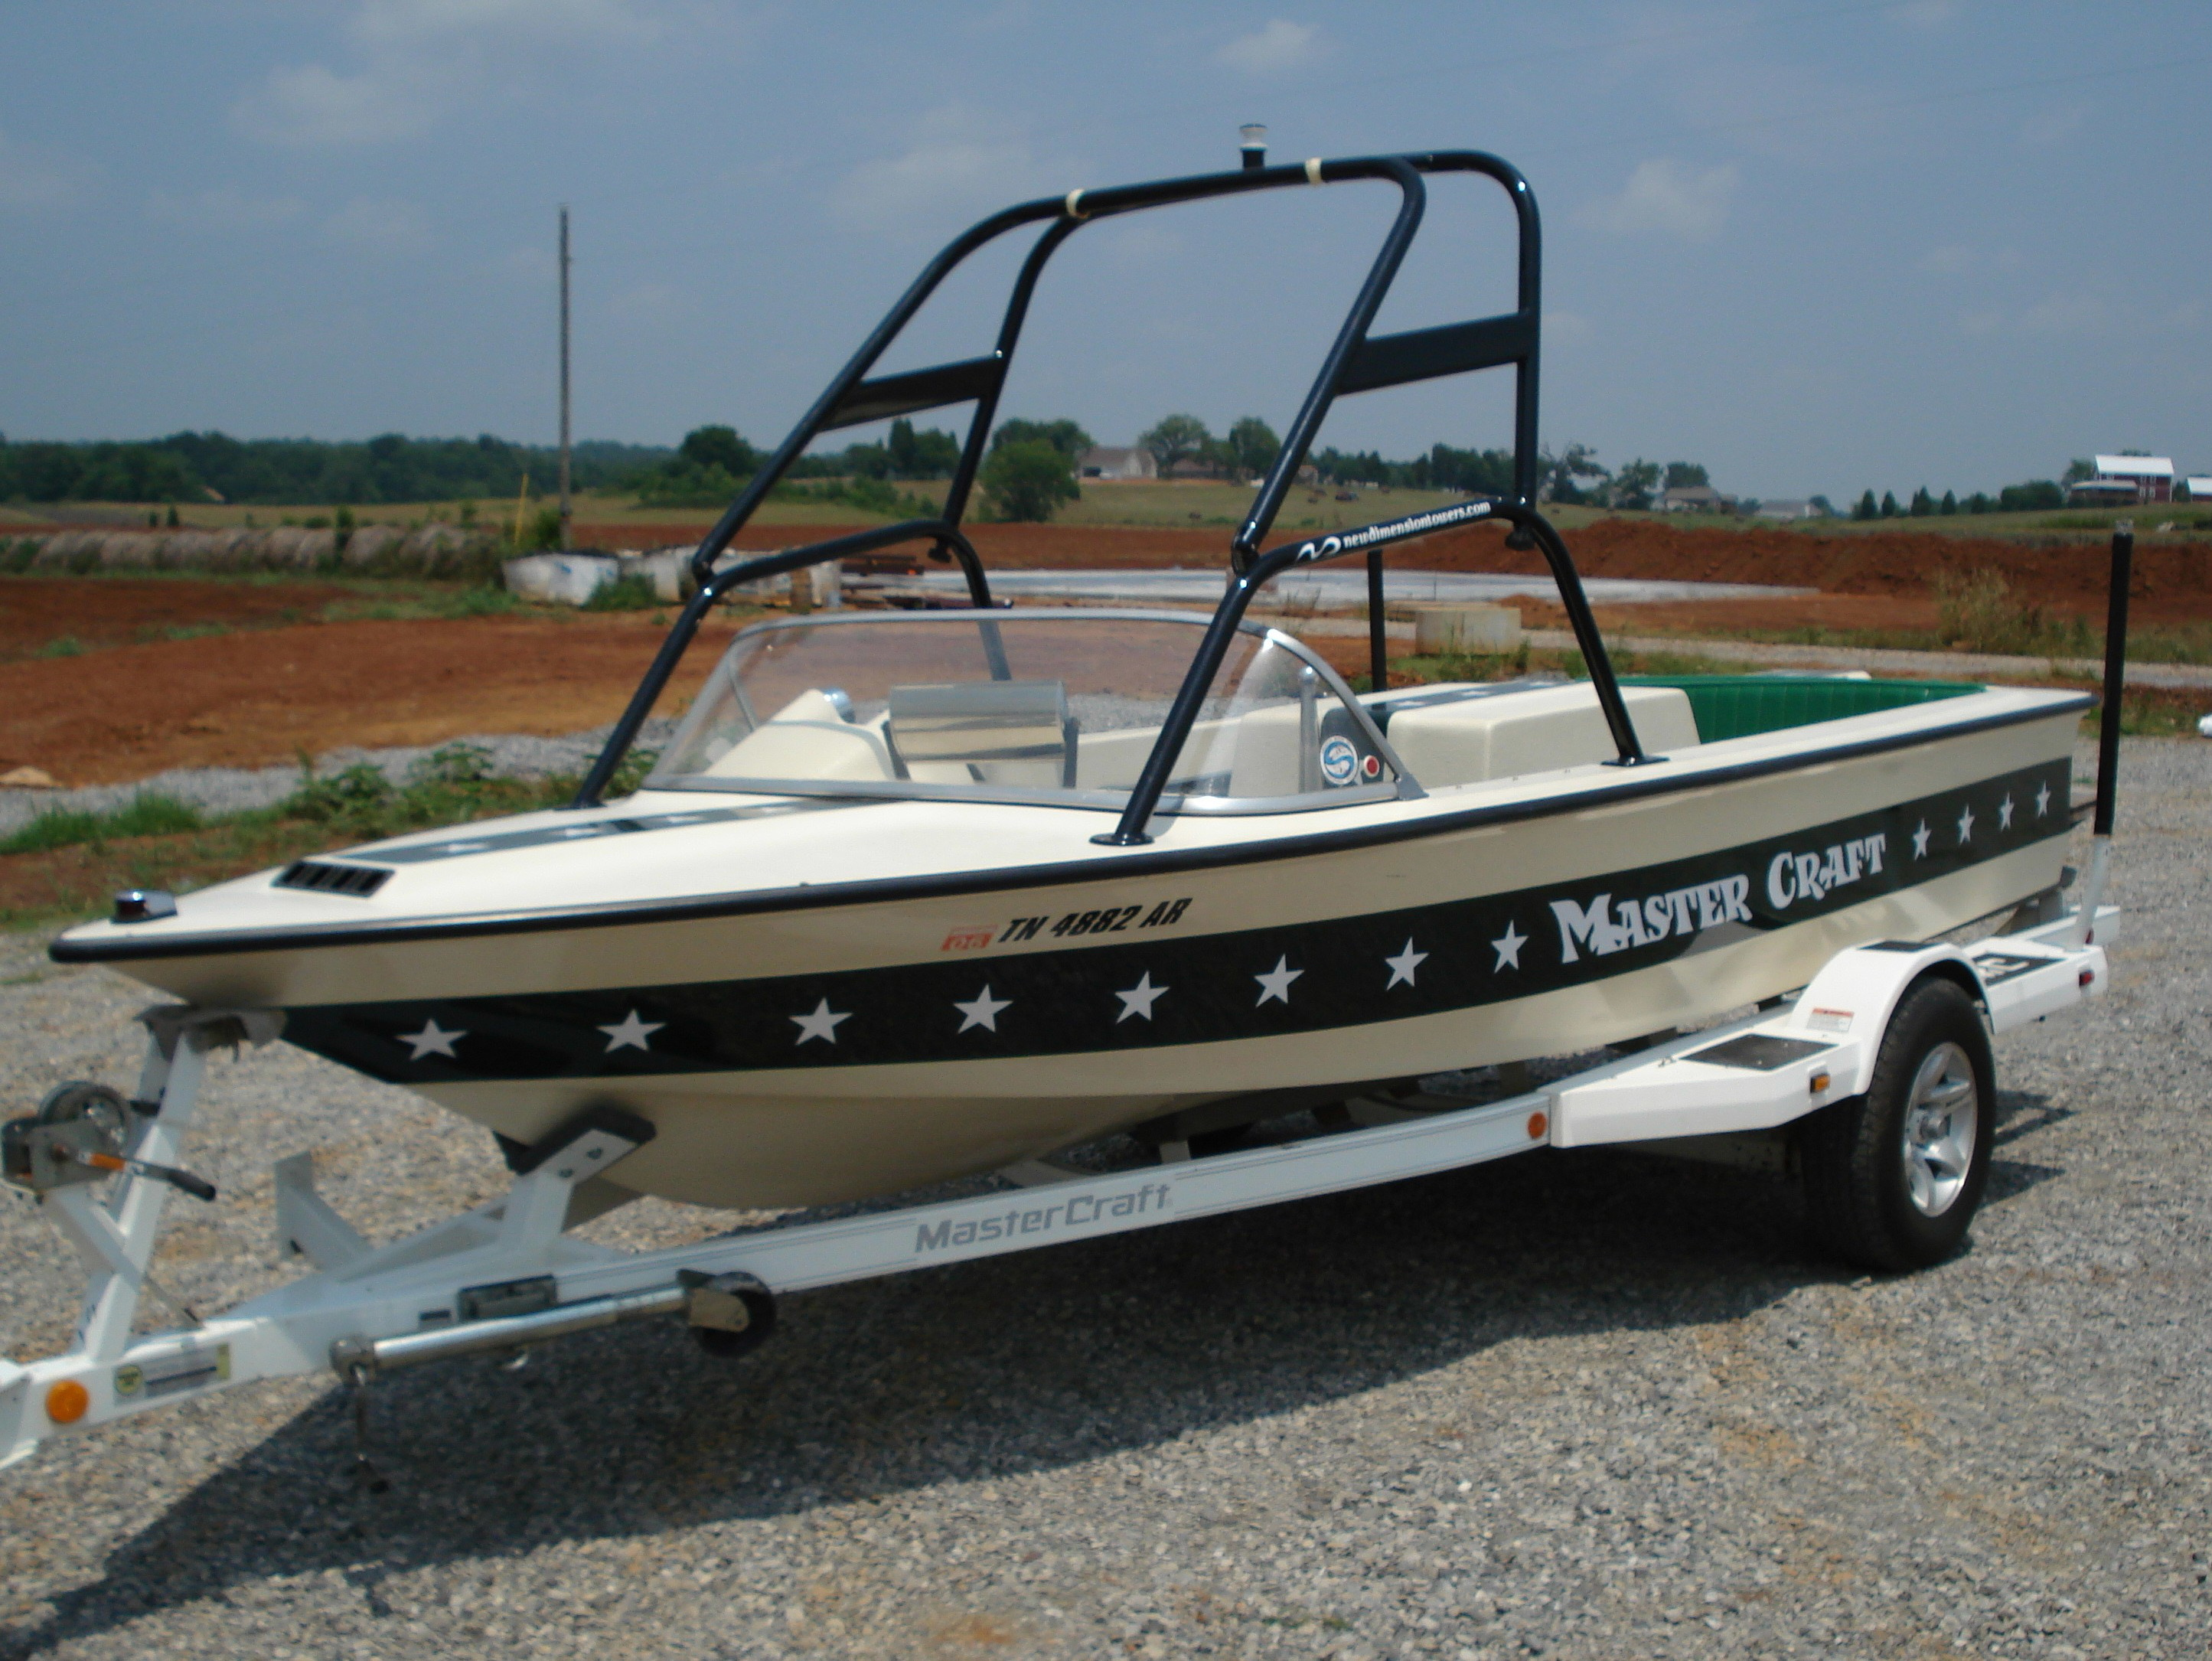 main image of 77 - 85 mastercraft skier